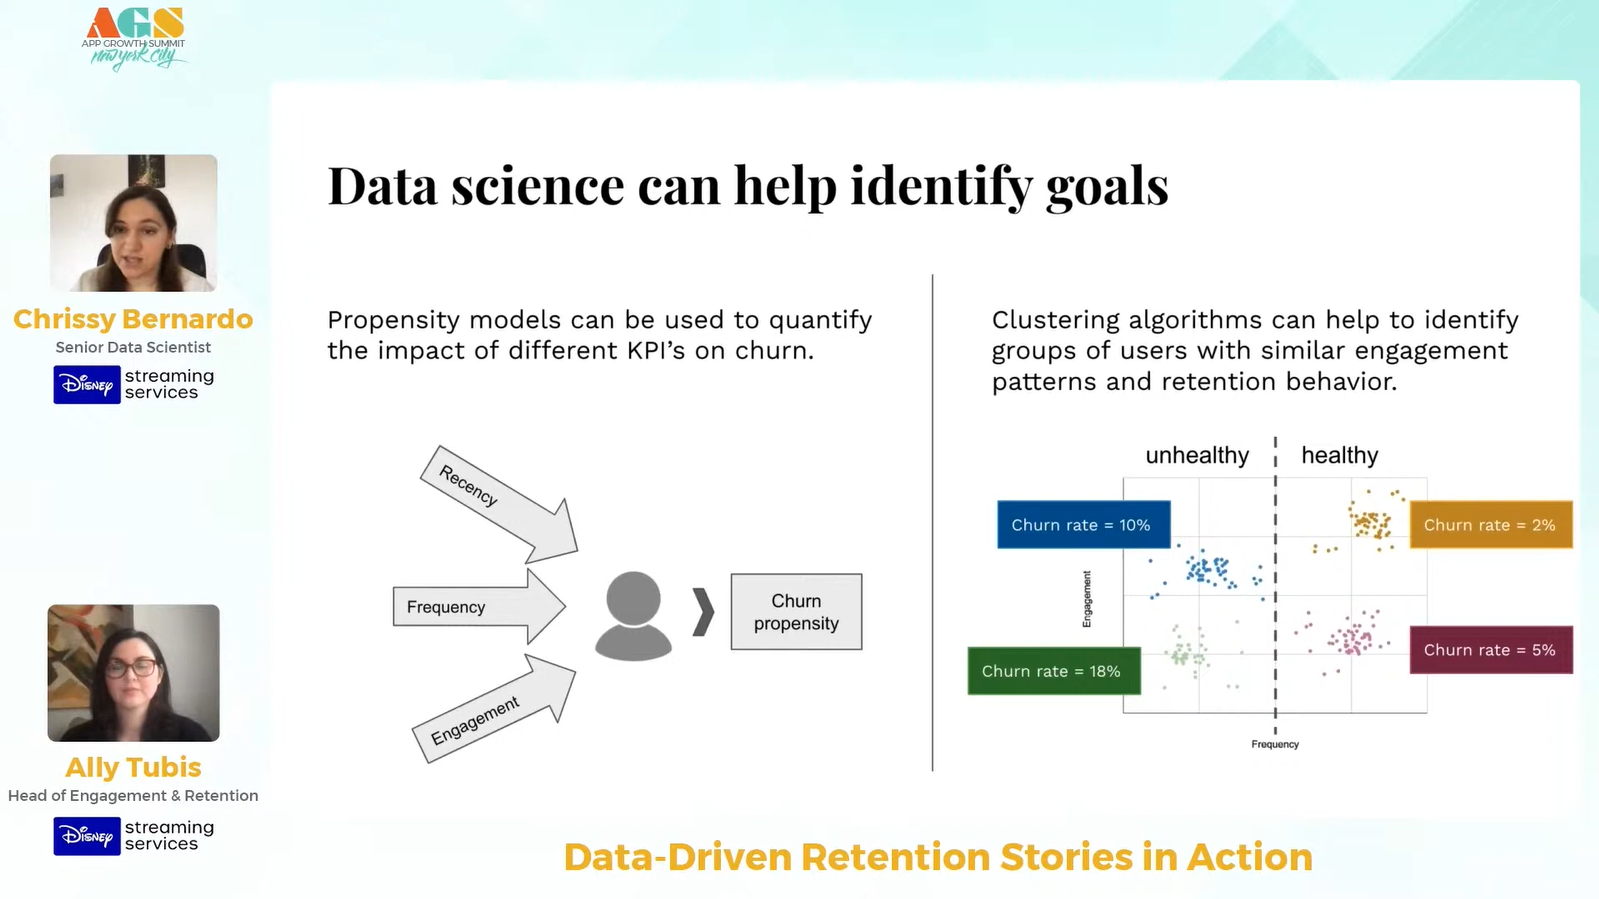 Data science can help identify goals